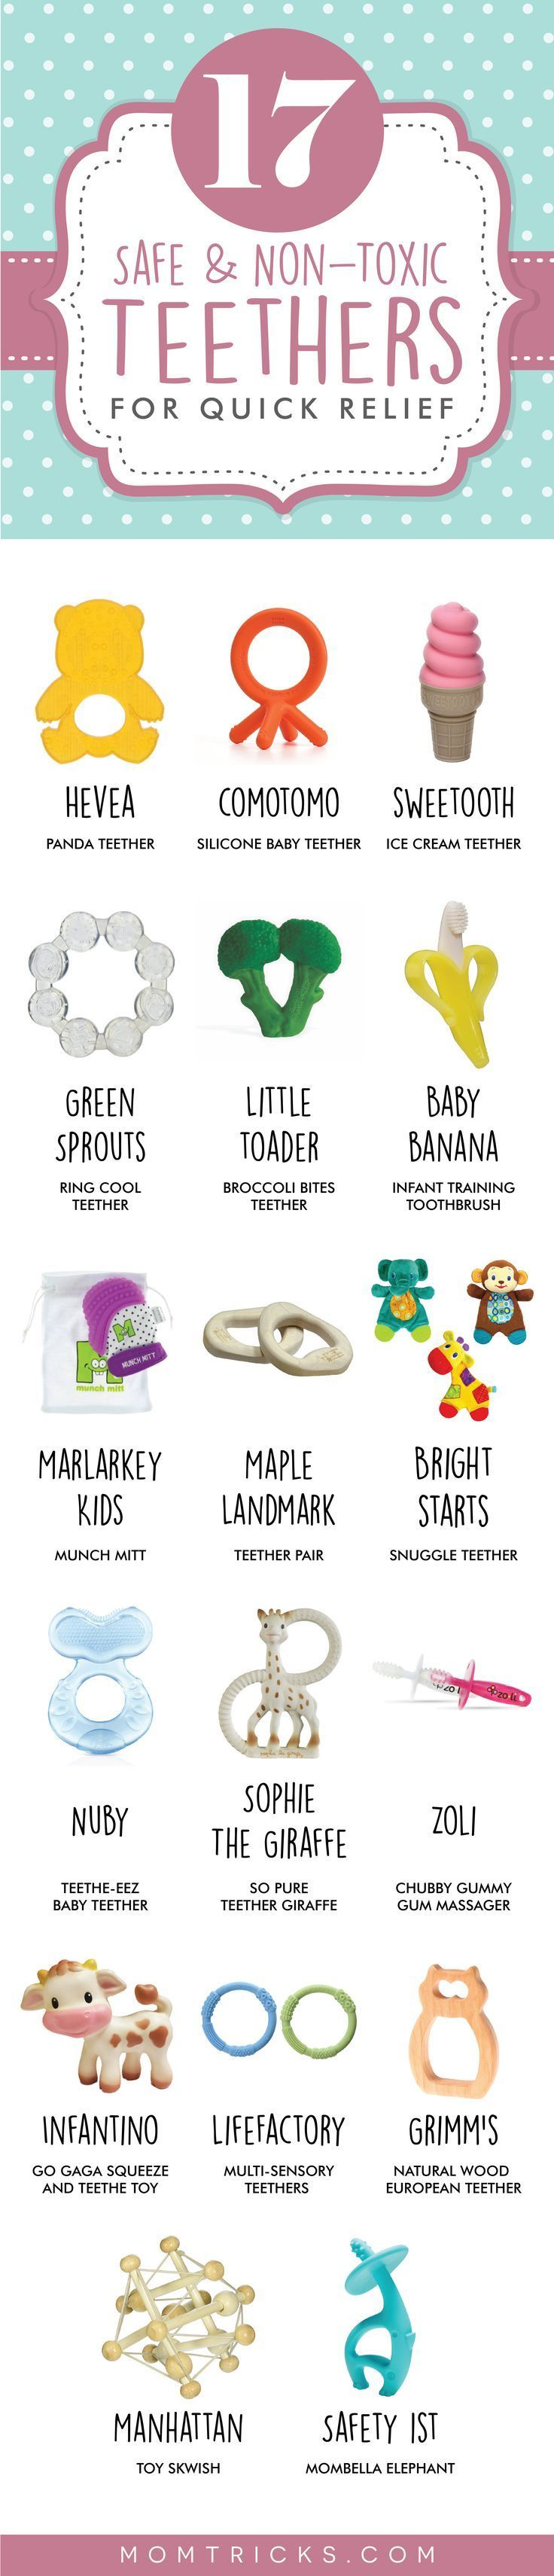 Best 25 Best teething toys ideas on Pinterest